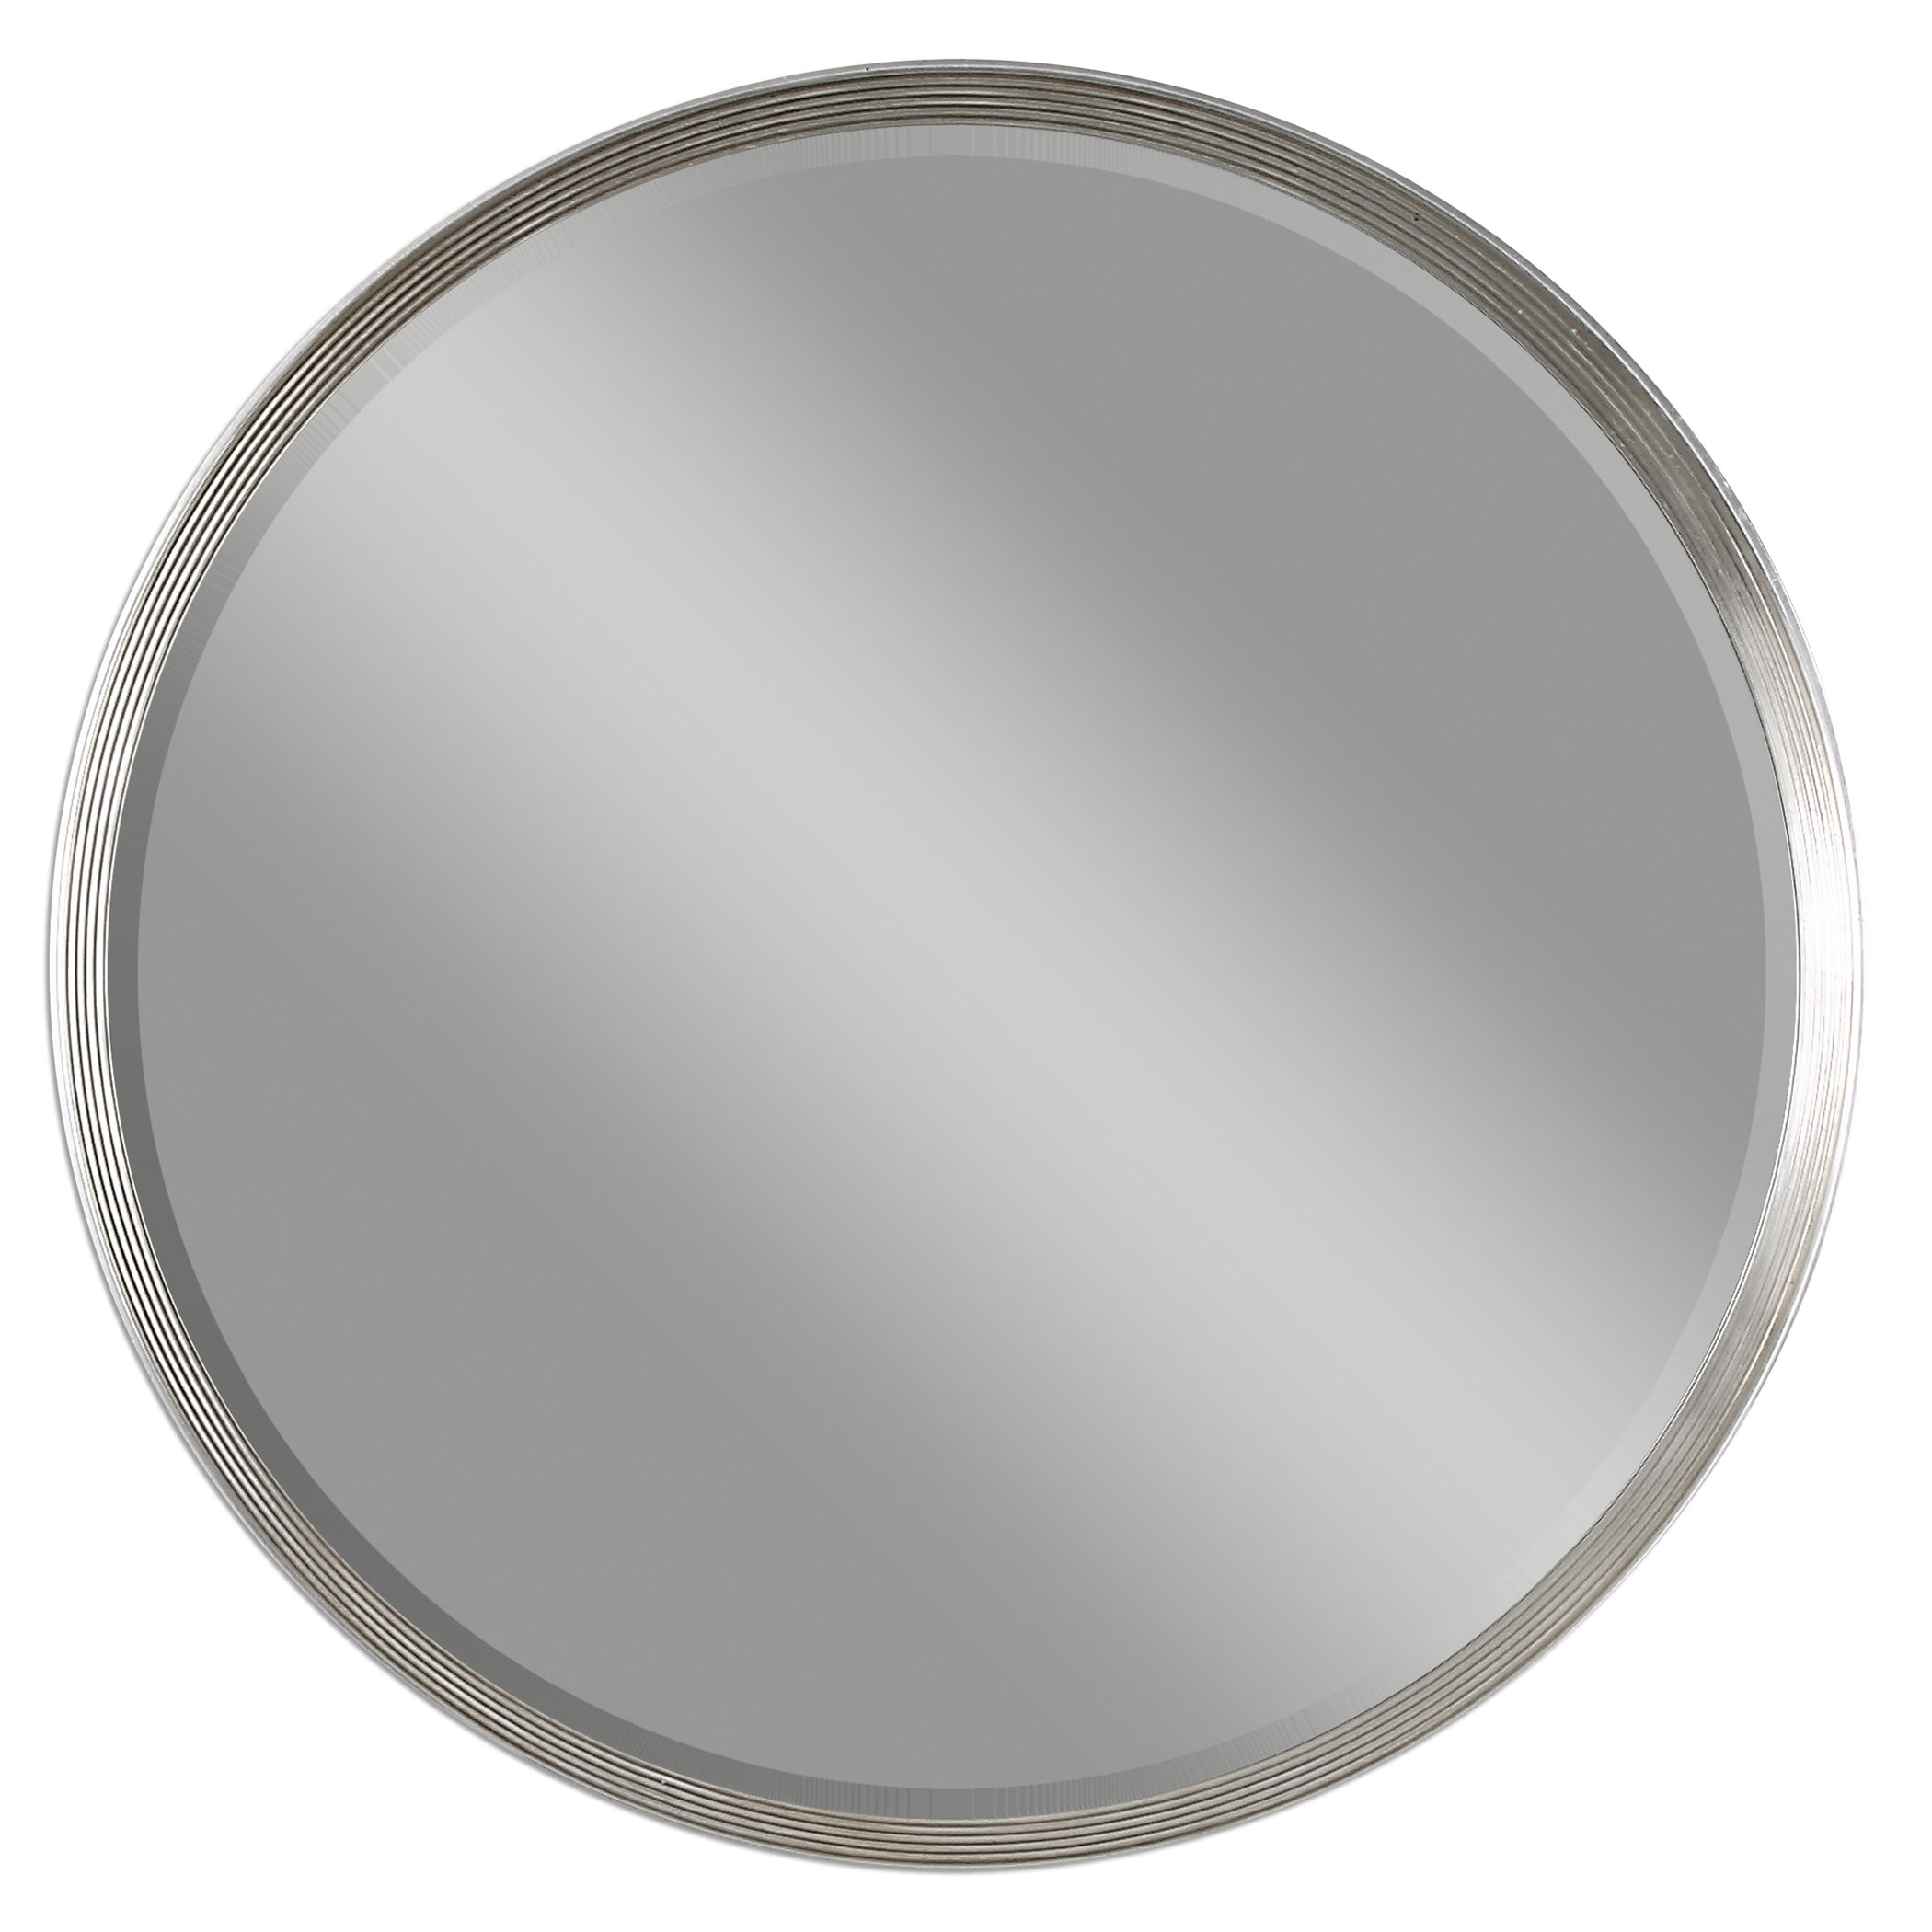 Round Silver Accent Wall Mirror & Reviews | Joss & Main Inside Luna Accent Mirrors (Image 17 of 20)